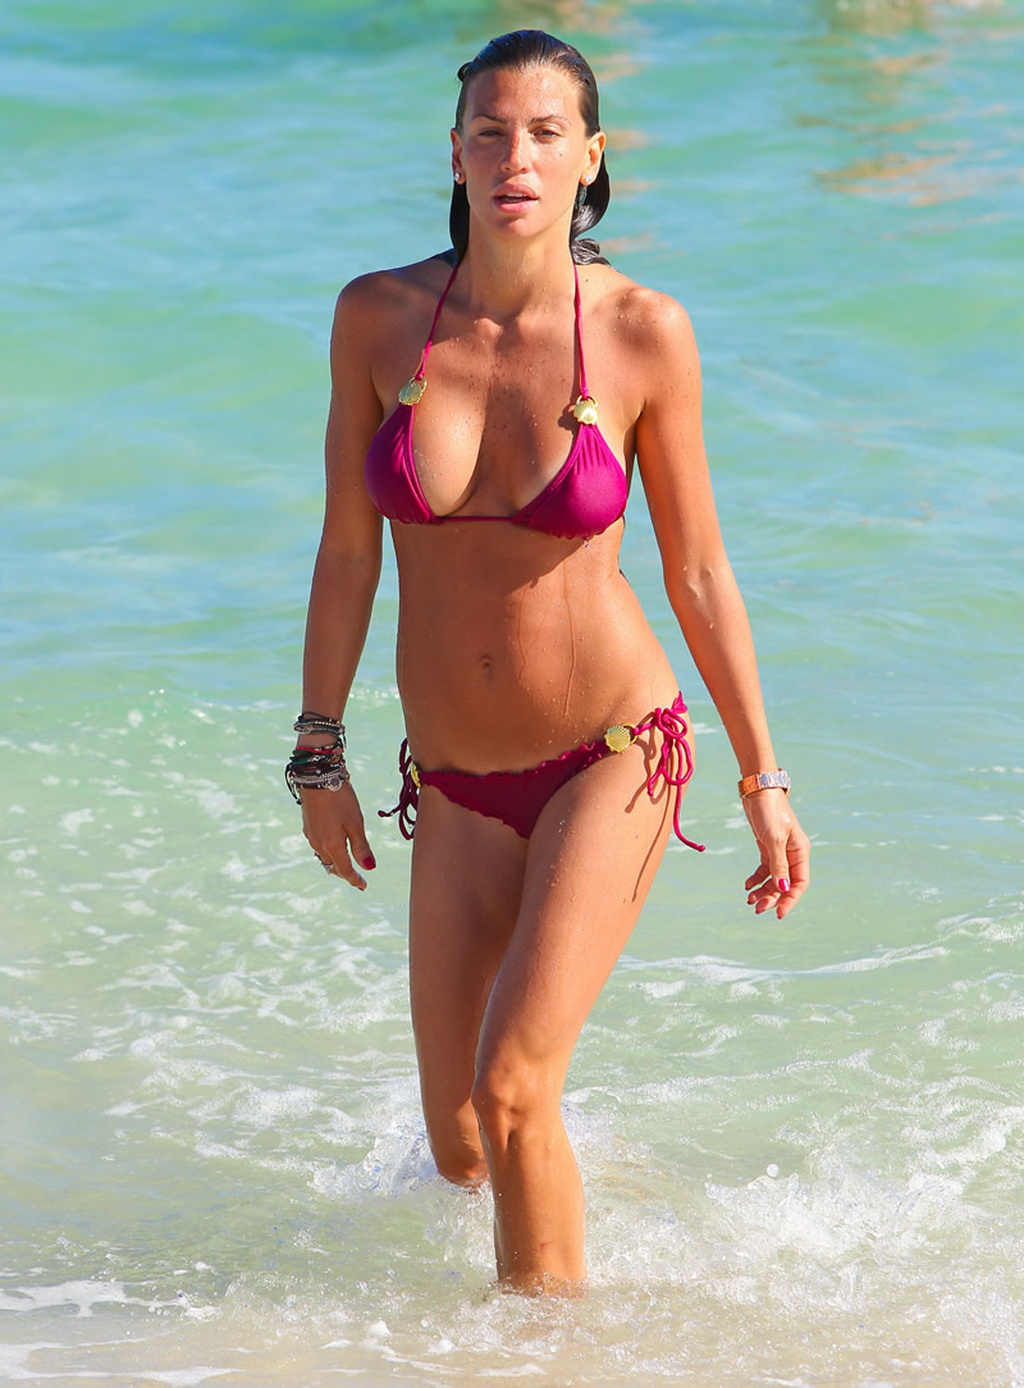 Claudia Galanti Wearing Skimpy Pink Bikini On A Beach In Miami-4339